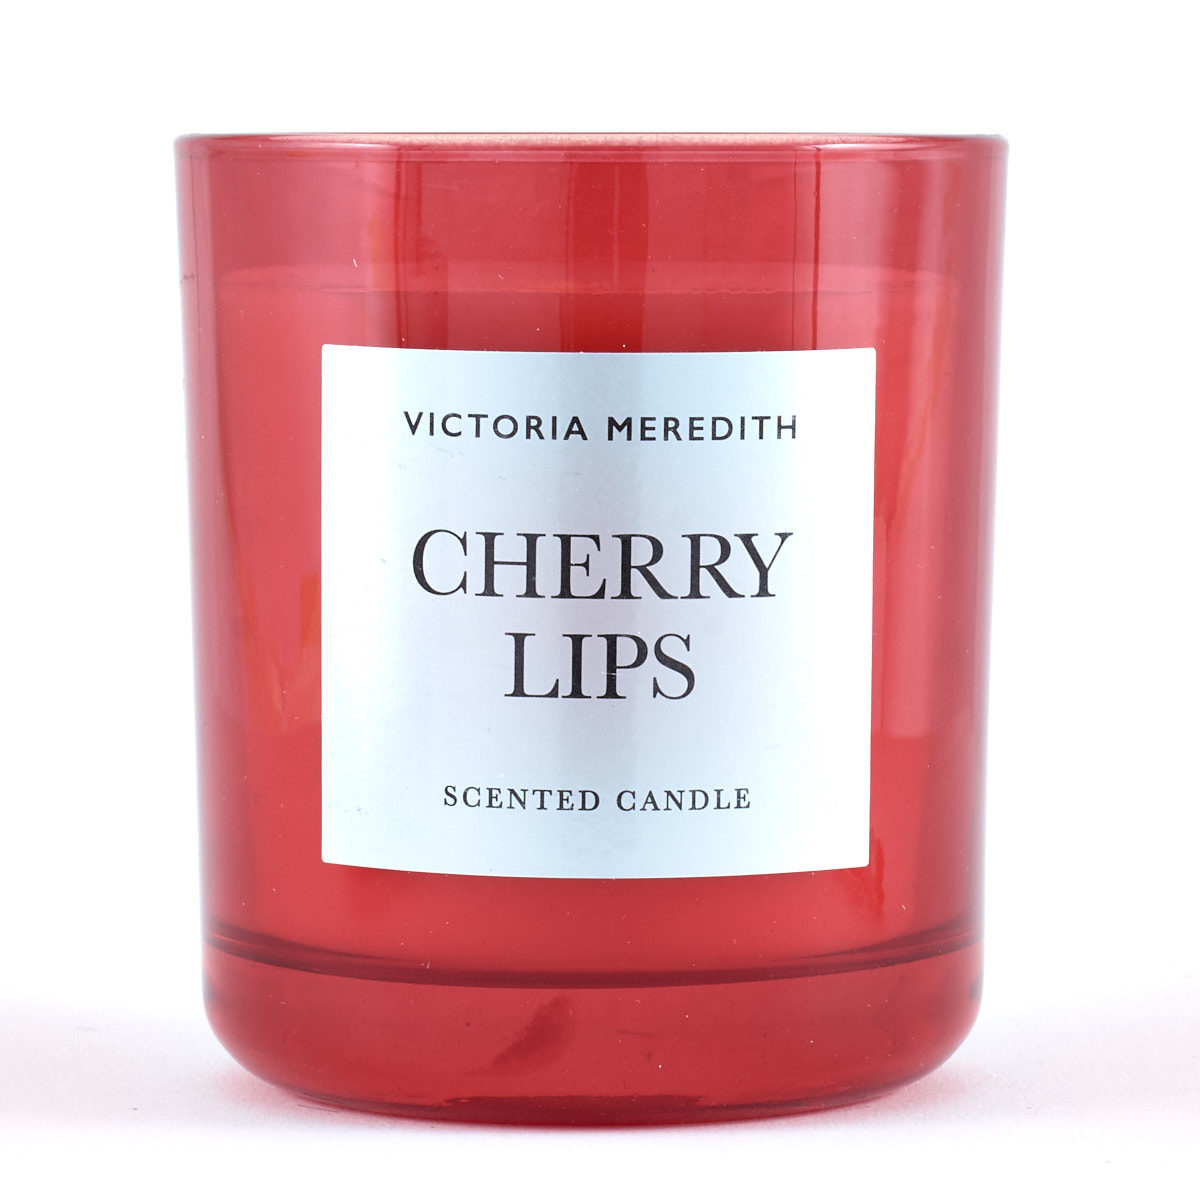 Victoria Meredith Cherry Lips Scented Candle